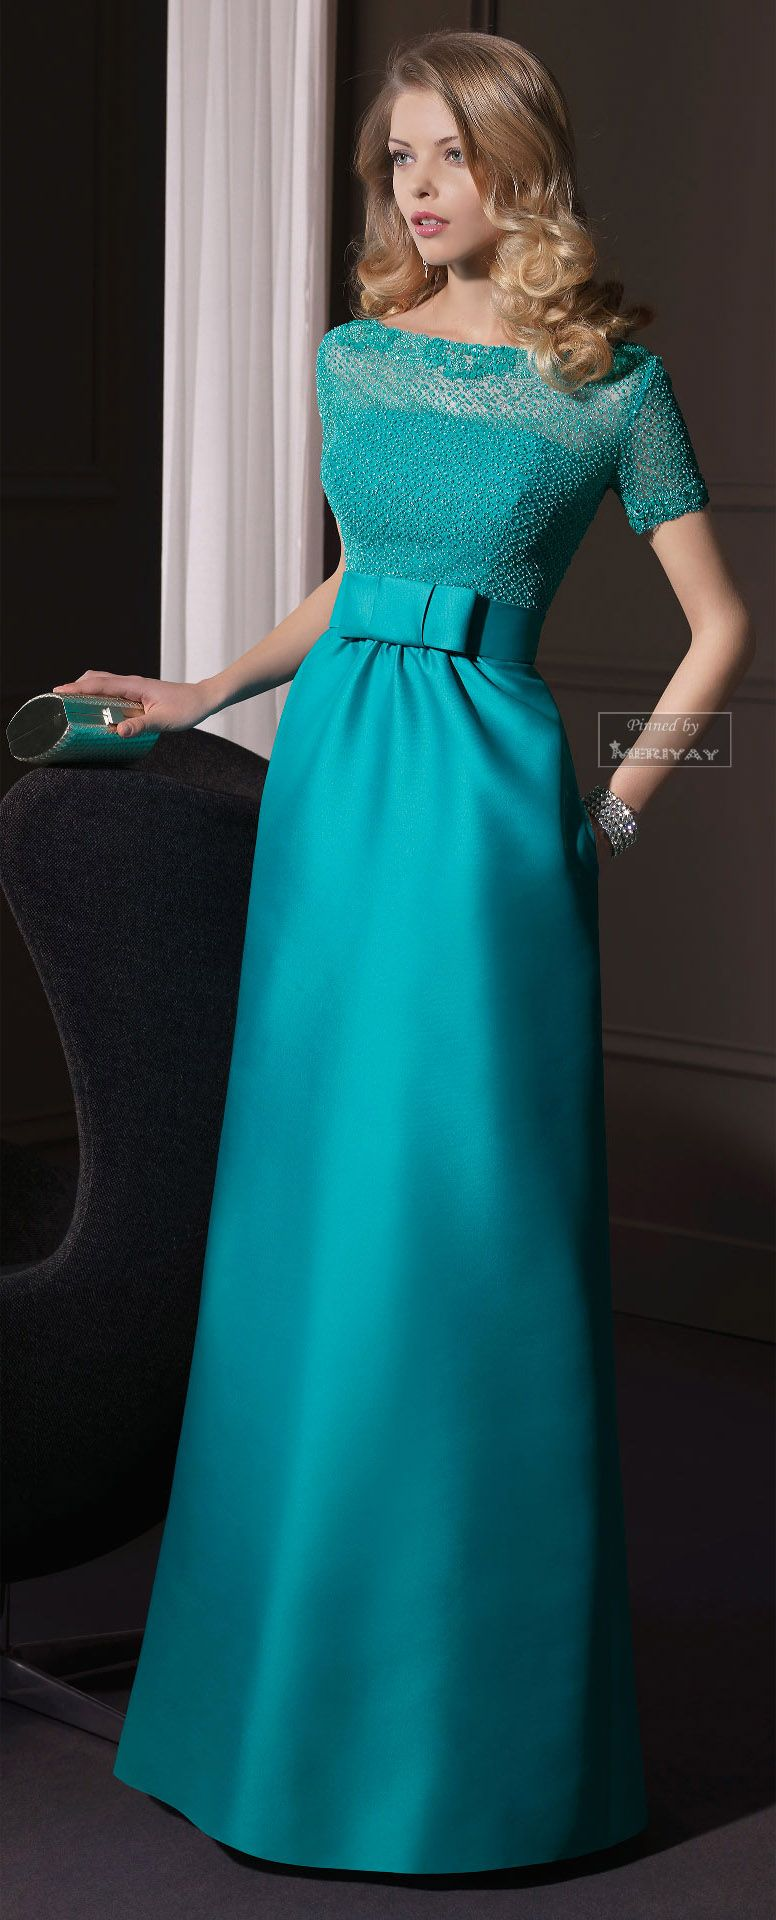 Aire barcelona party dress i would love a dress like this for my